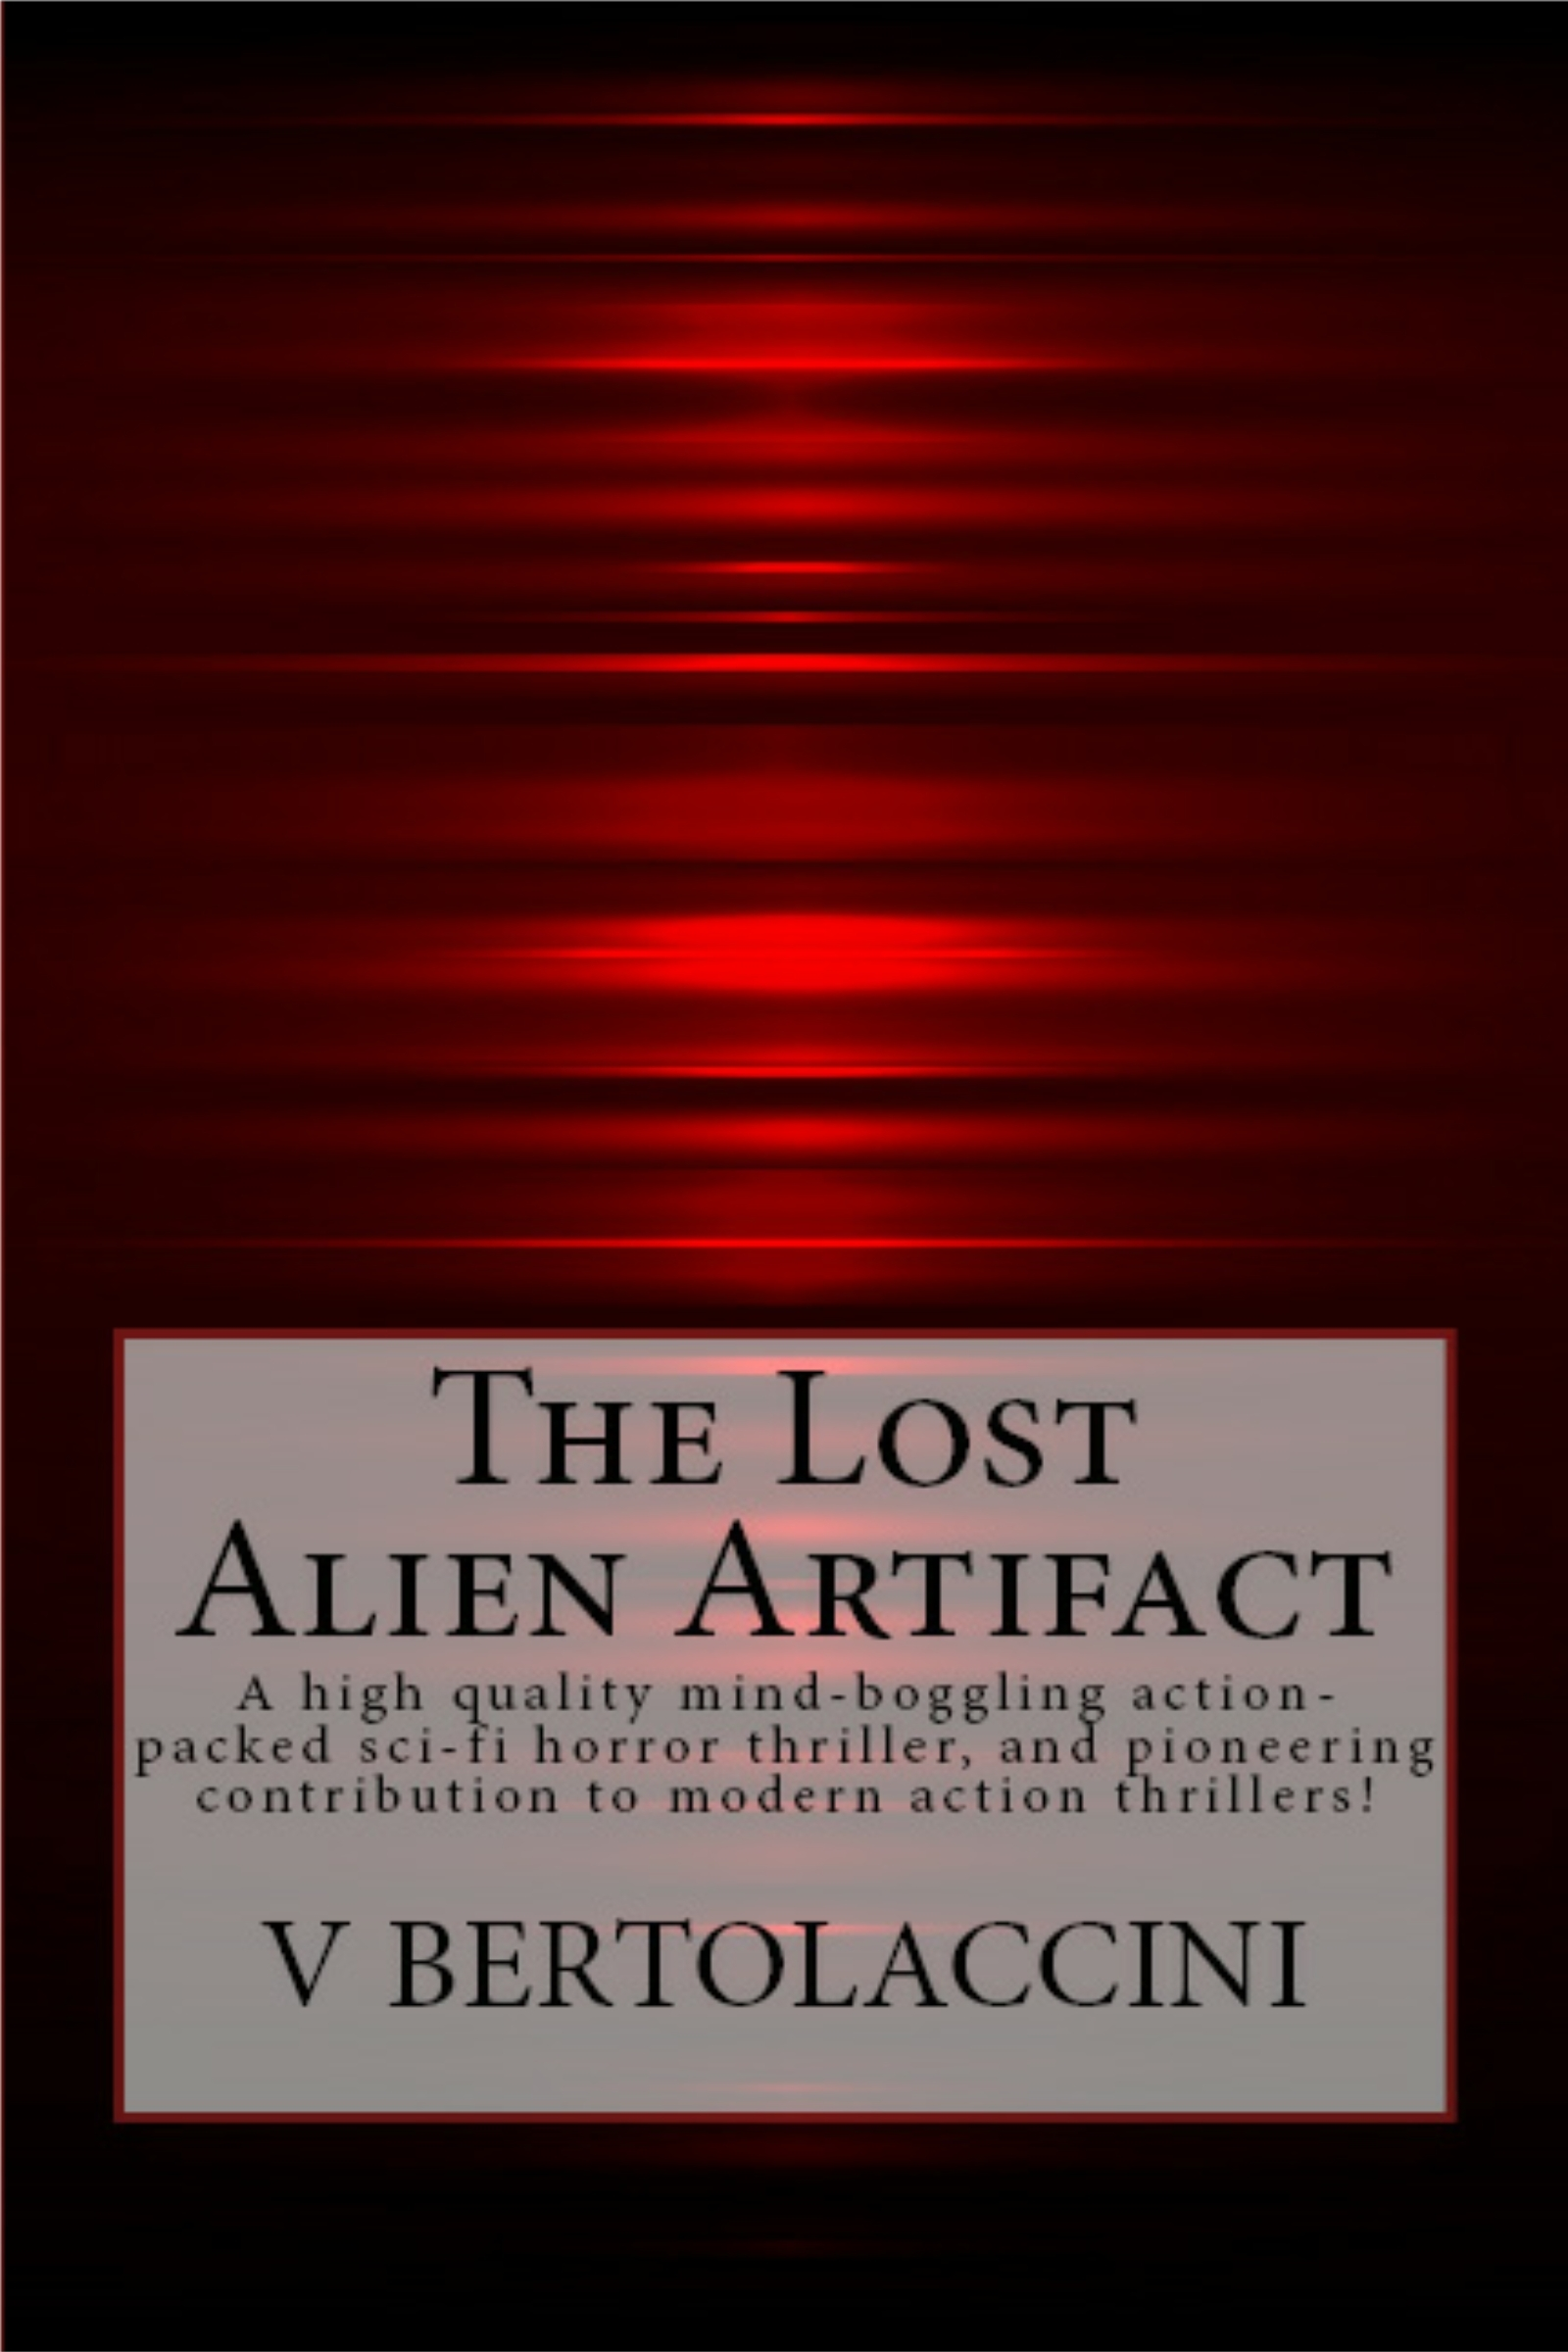 The Lost Alien Artifact